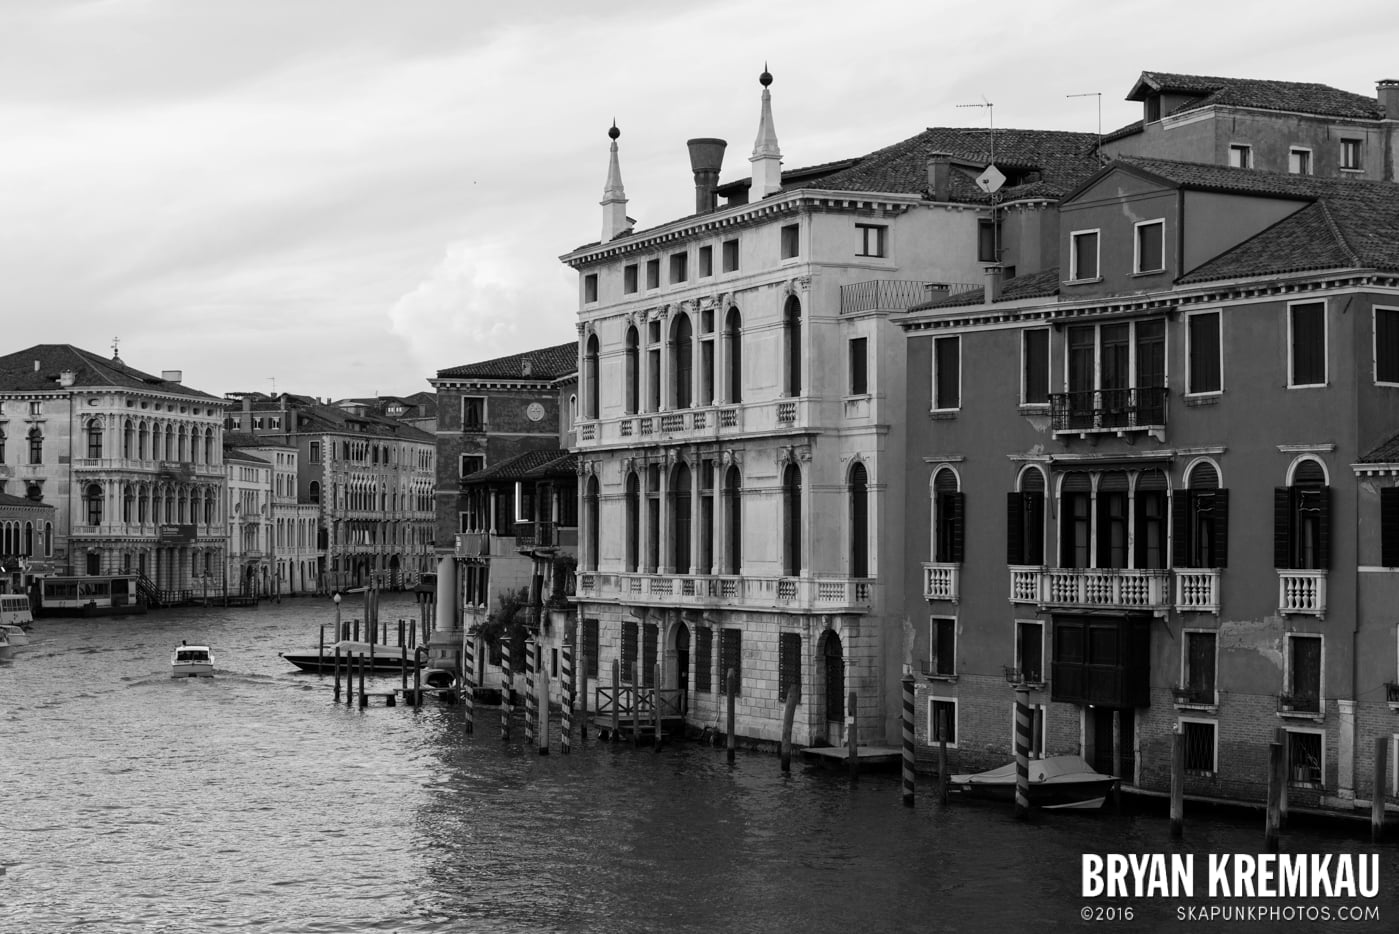 Italy Vacation - Day 4: Venice - 9.12.13 (6)